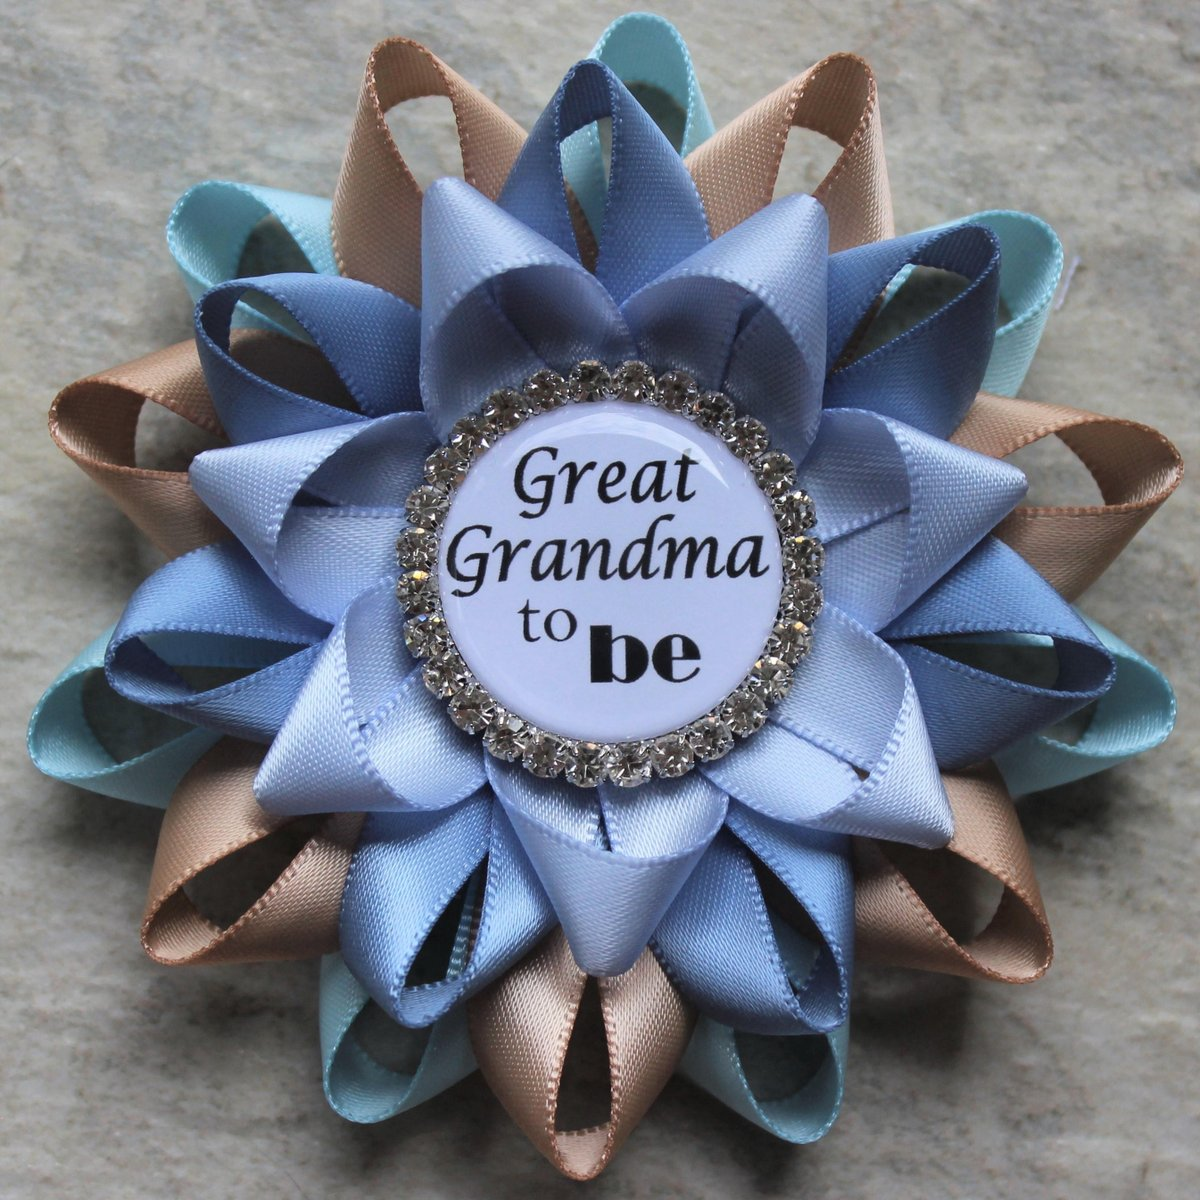 Great Grandma Pin, Grandma Gift, Baby Shower Gift, New Grandmother Gift, Pregnancy Reveal, Light Blue, Champagne, French Blue, Ice Blue https://t.co/AA7k75ToEd #style #shopping #etsy #smallbiz #etsyshop #gifts #shopsmall #ecommerce https://t.co/zhxWnRFnok